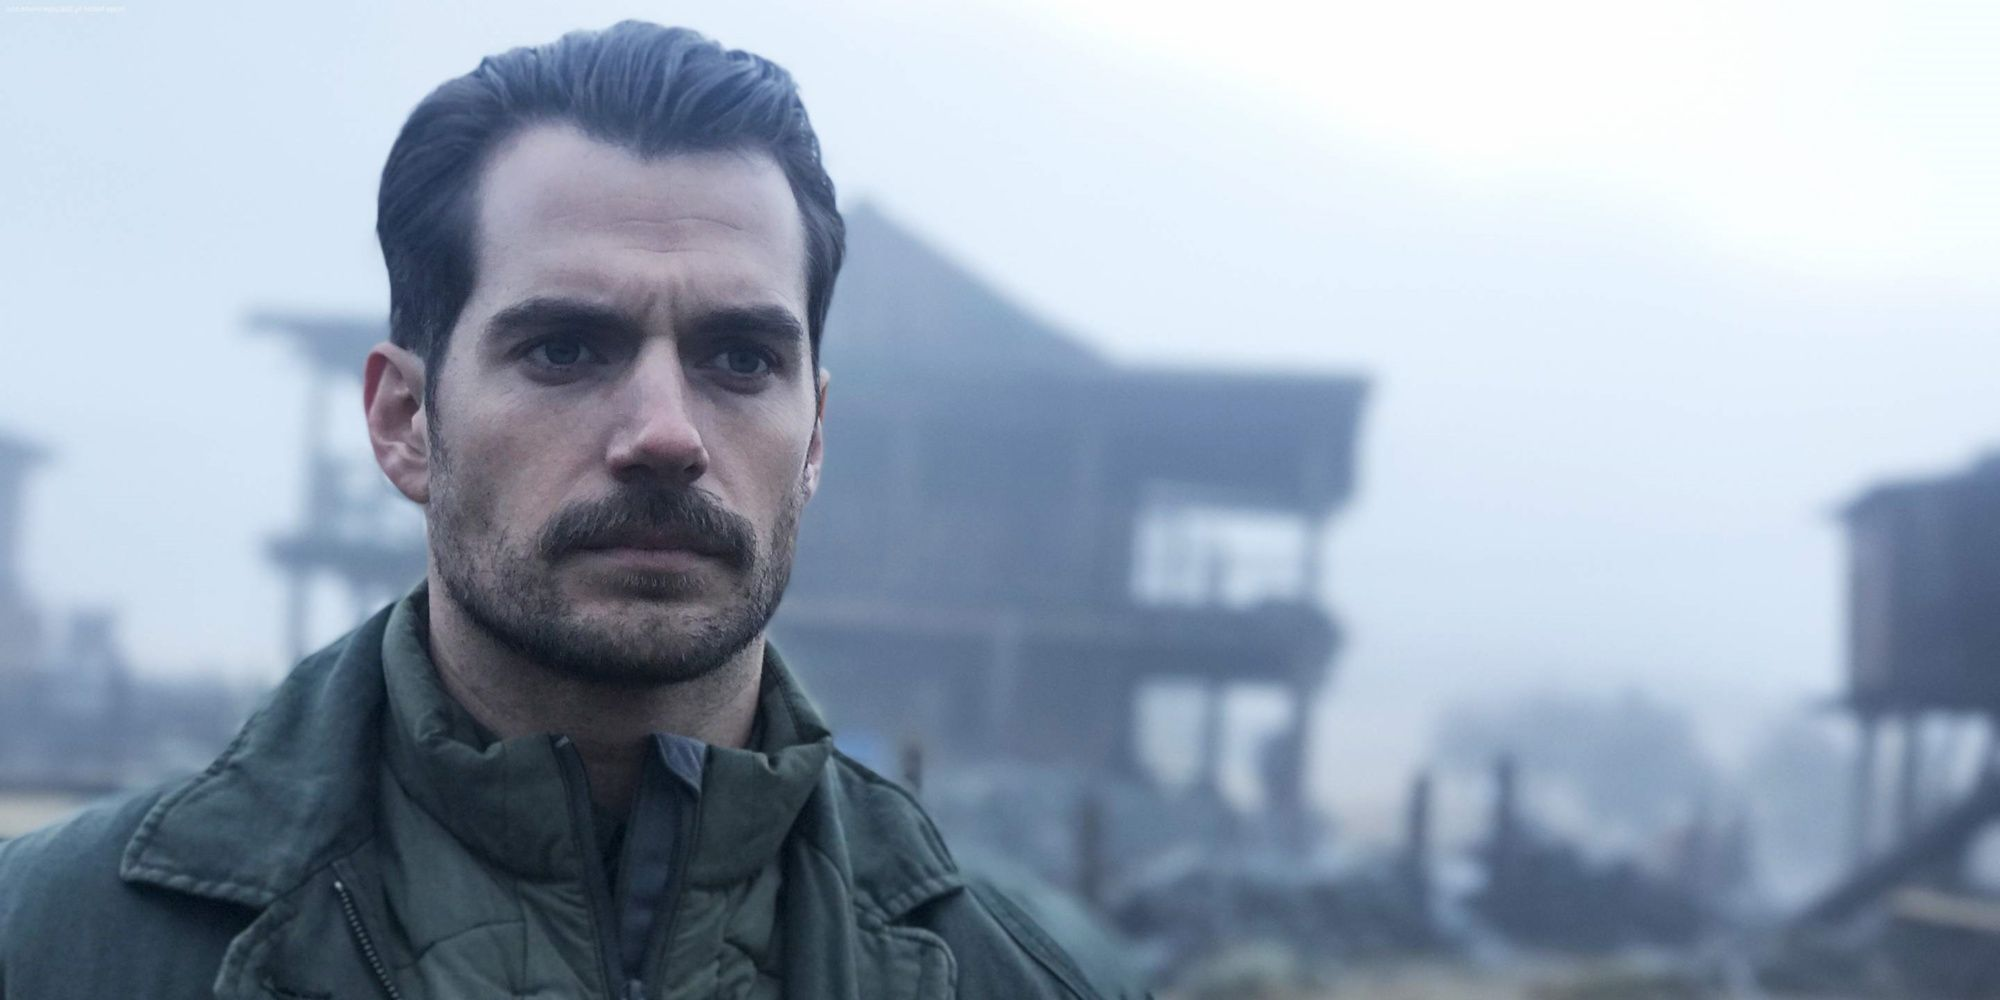 Henry Cavill is Too Famous to Play 007, Says James Bond Expert